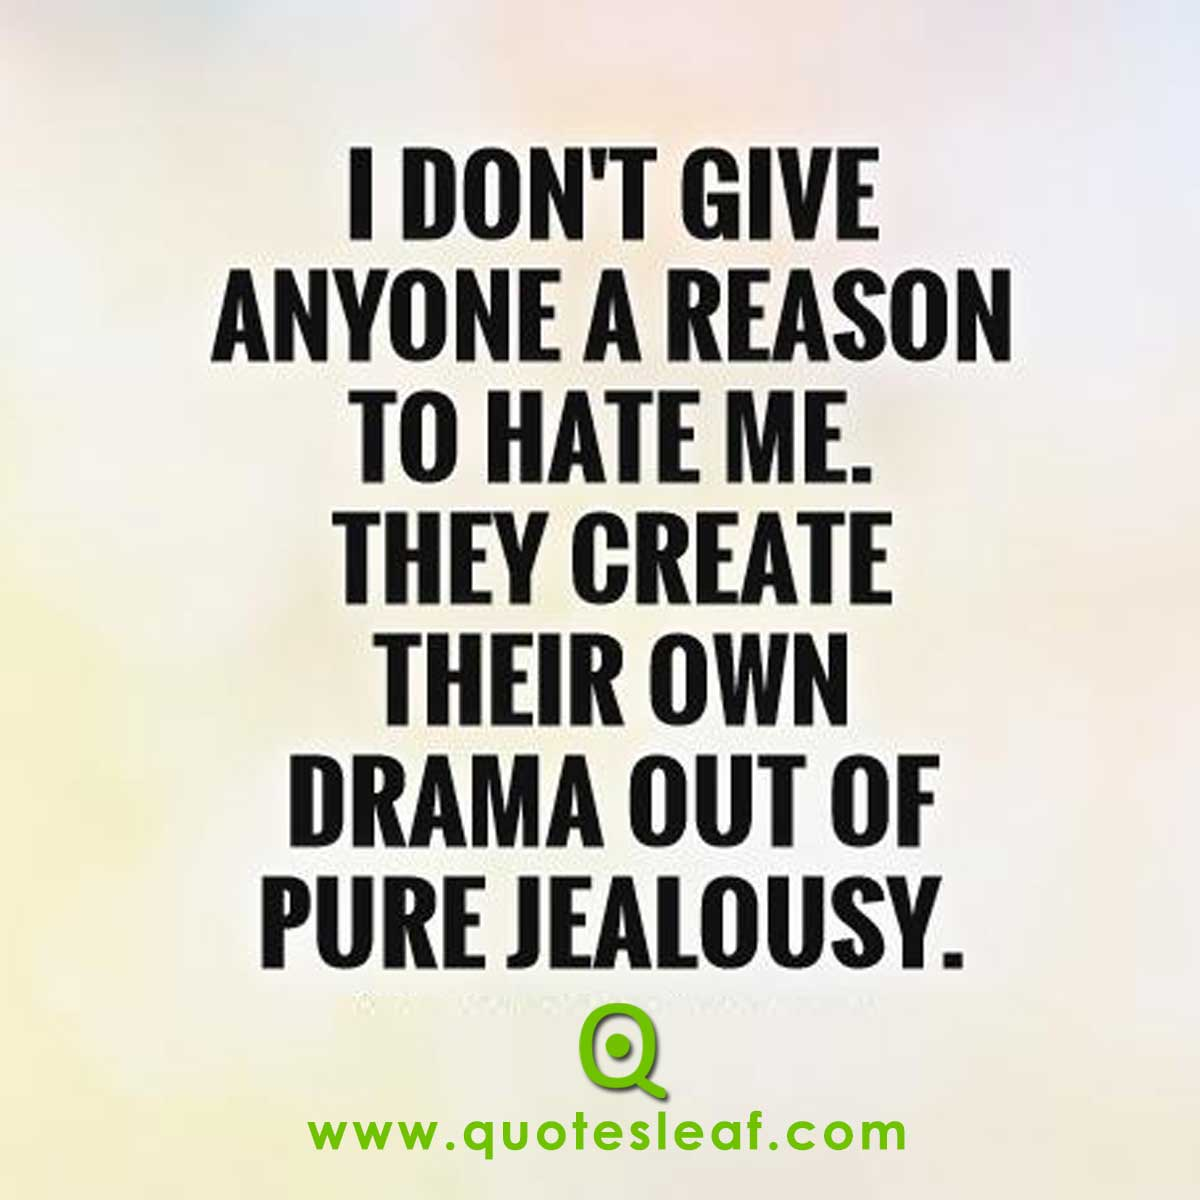 I Don't Give Anyone A Reason To Hate Me Quotes Image